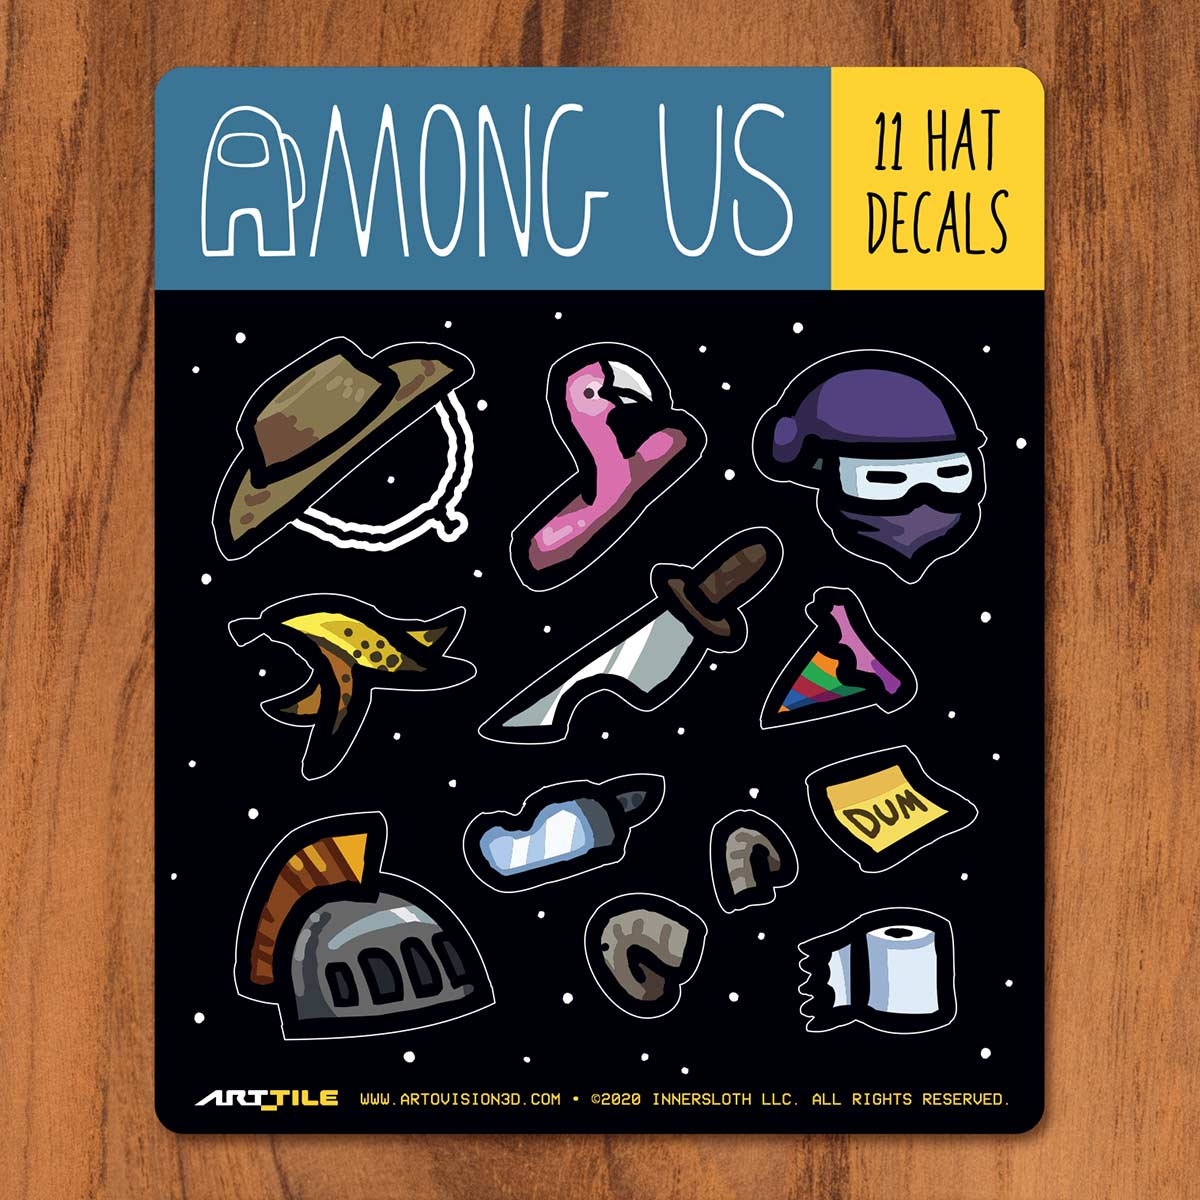 Among Us: Art Tile Crewmate Decals - More Hats